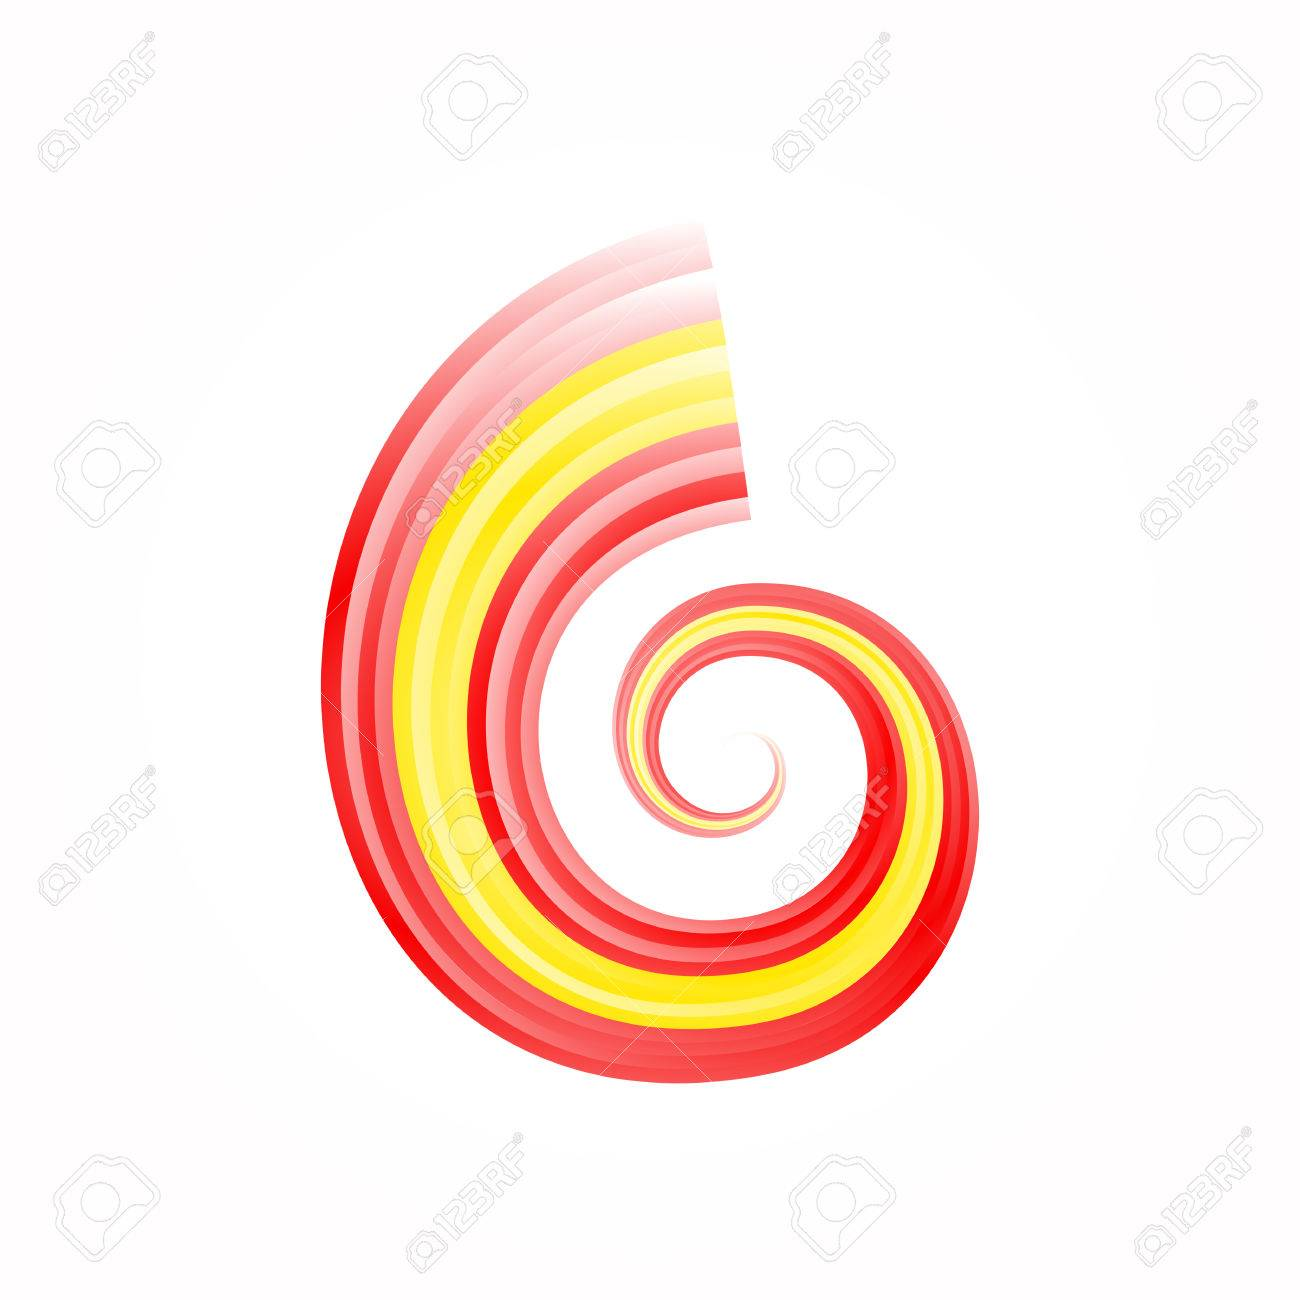 Abstract swirl Spanish and Macedonian flag isolated on white Stock Vector - 22786218